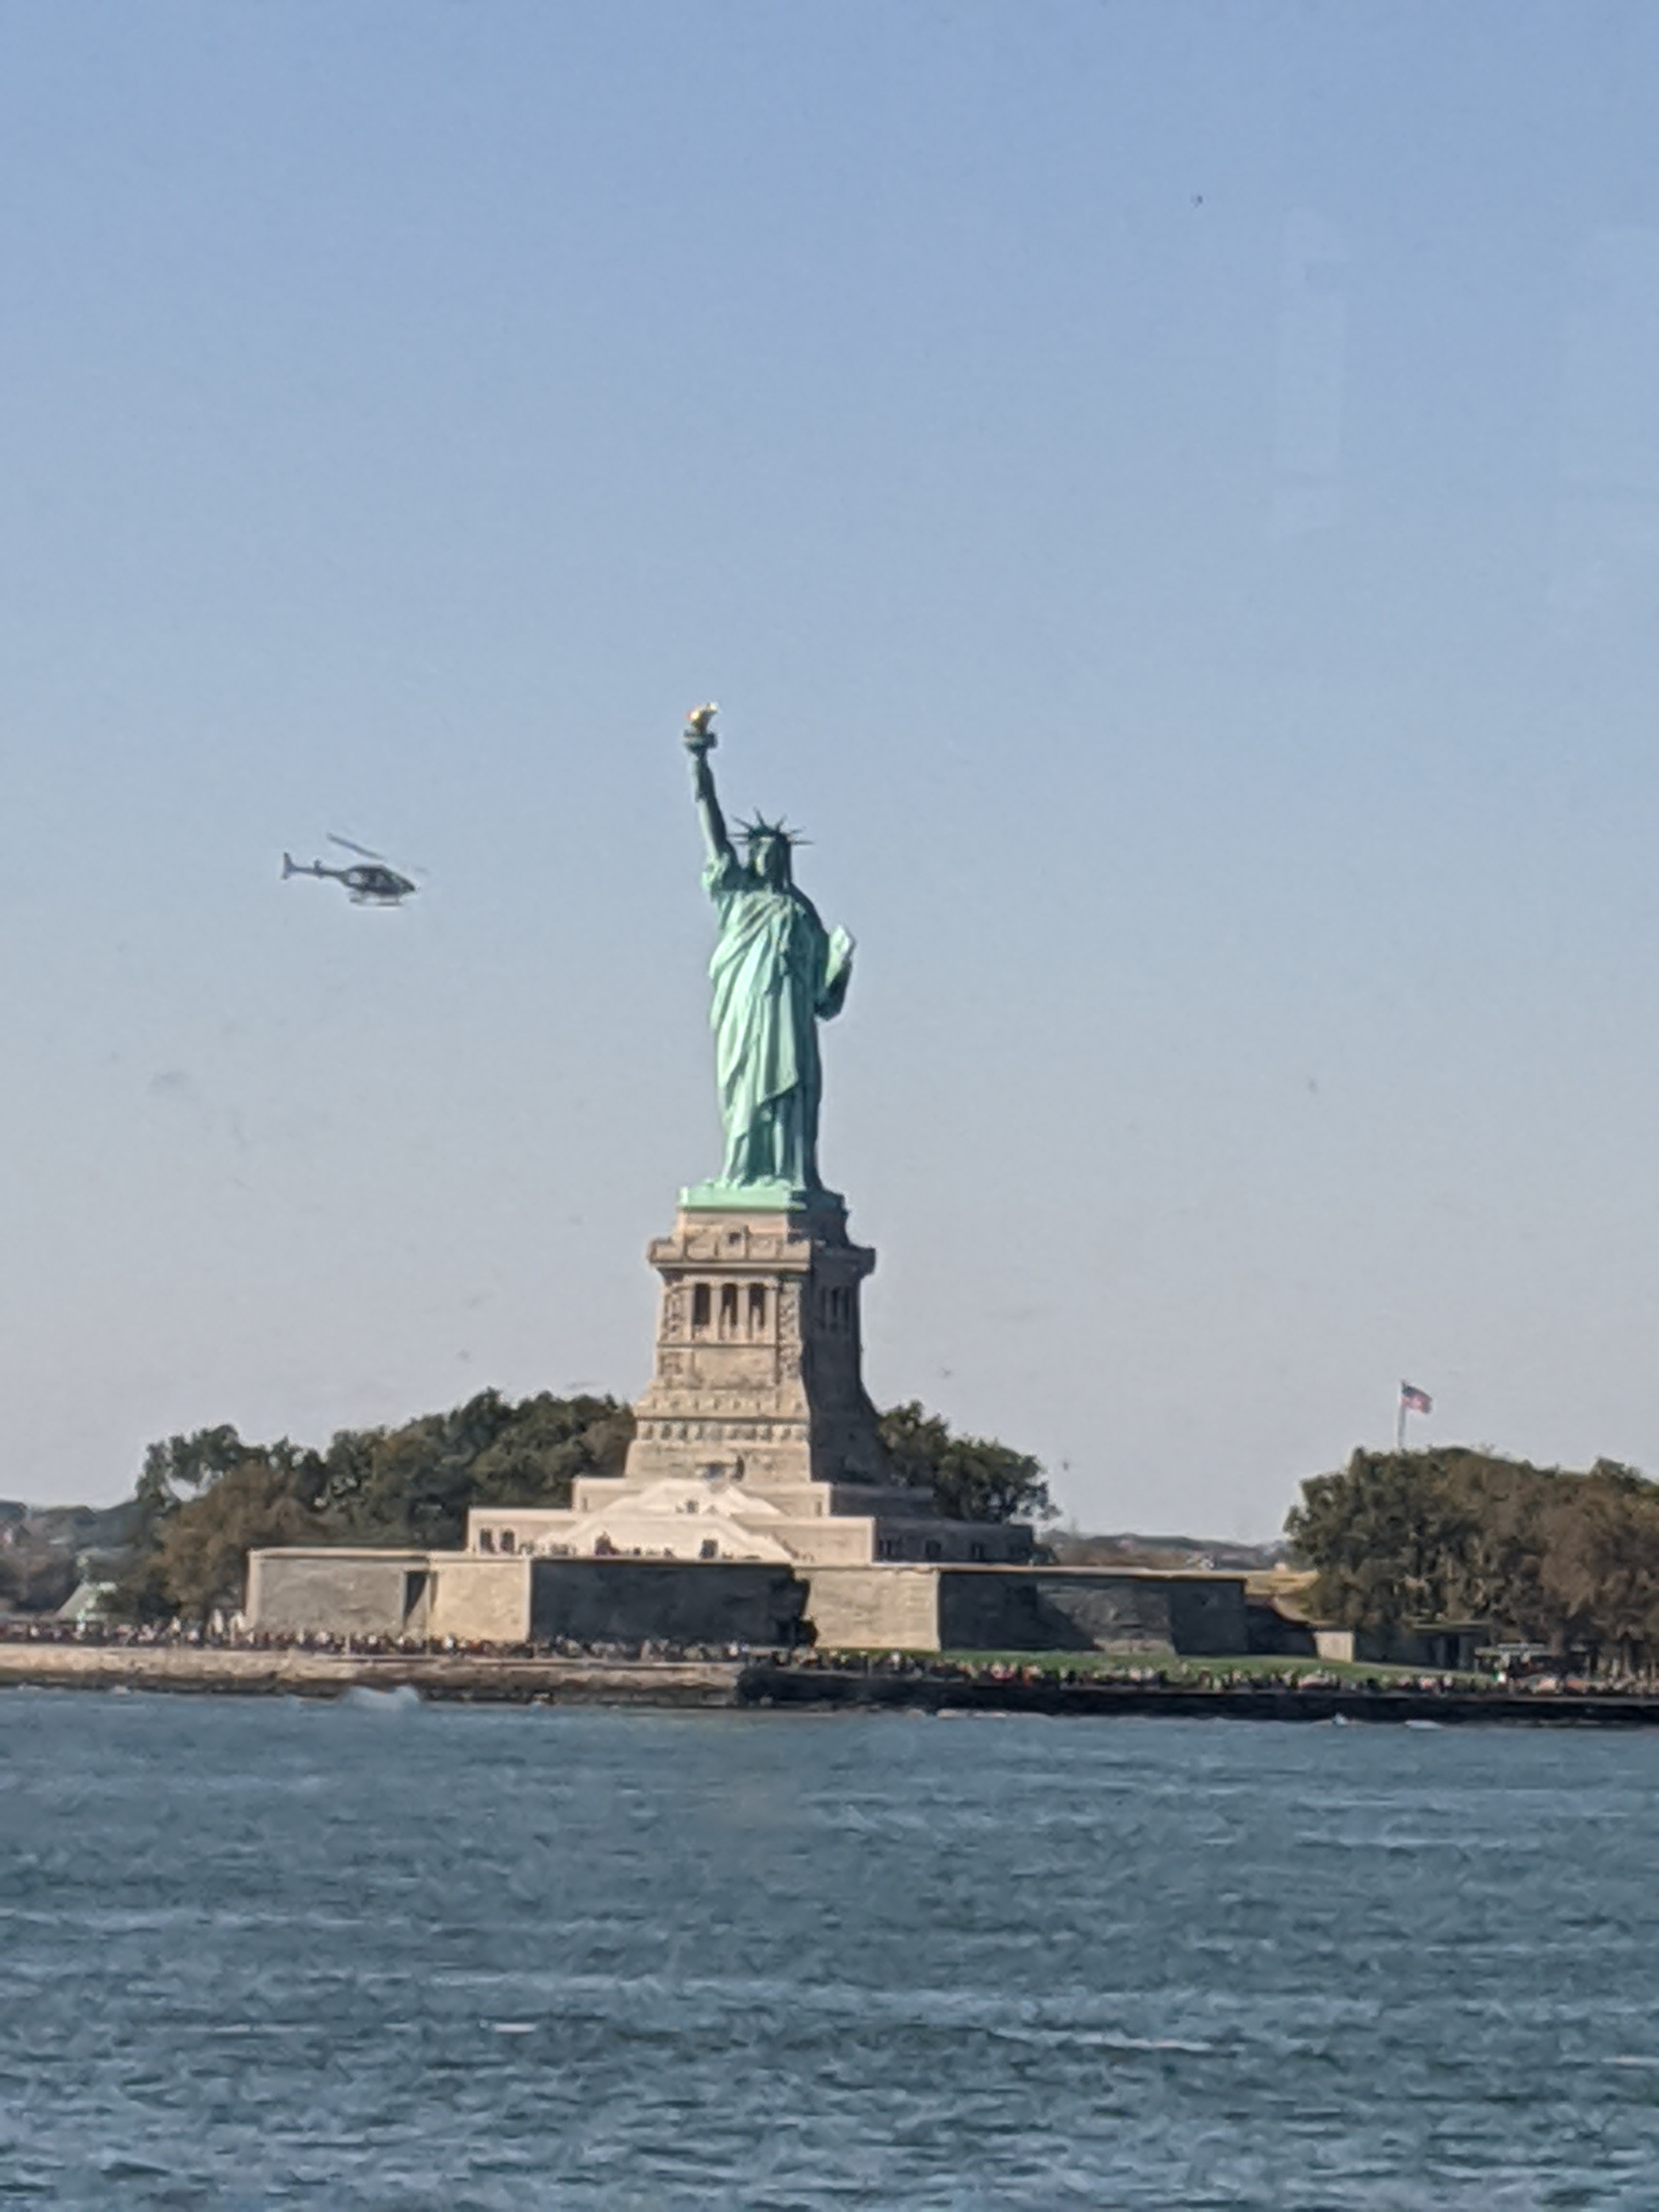 The View from Staten Island: What I Saw in New York